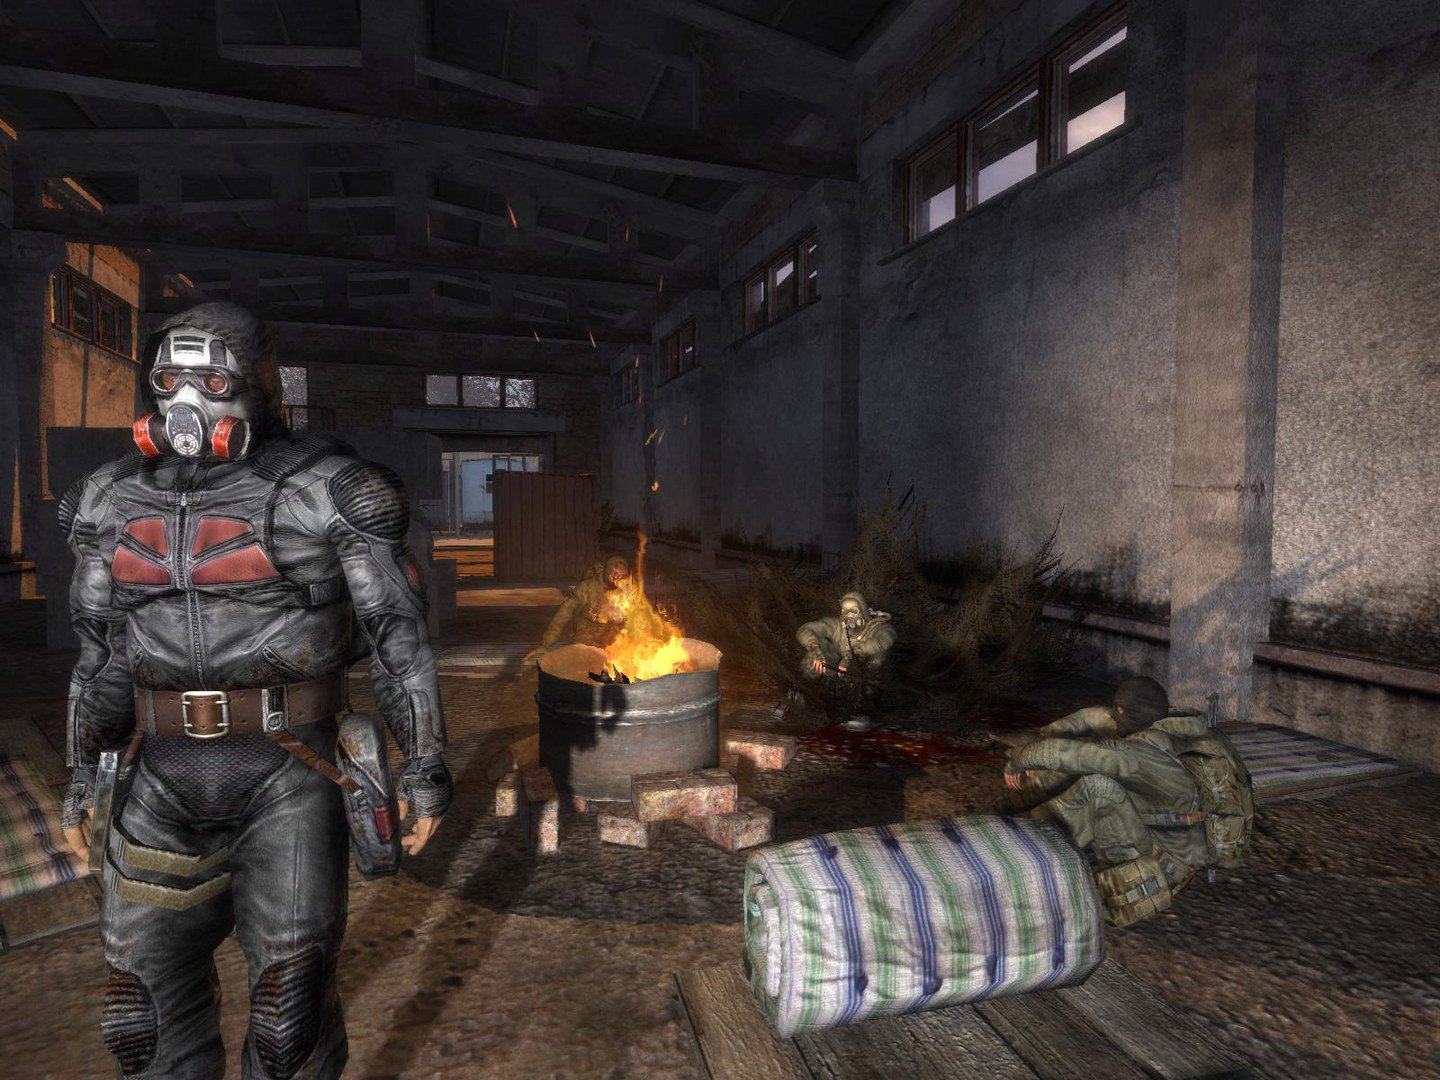 S.T.A.L.K.E.R. Shadow of Chernobyl 17